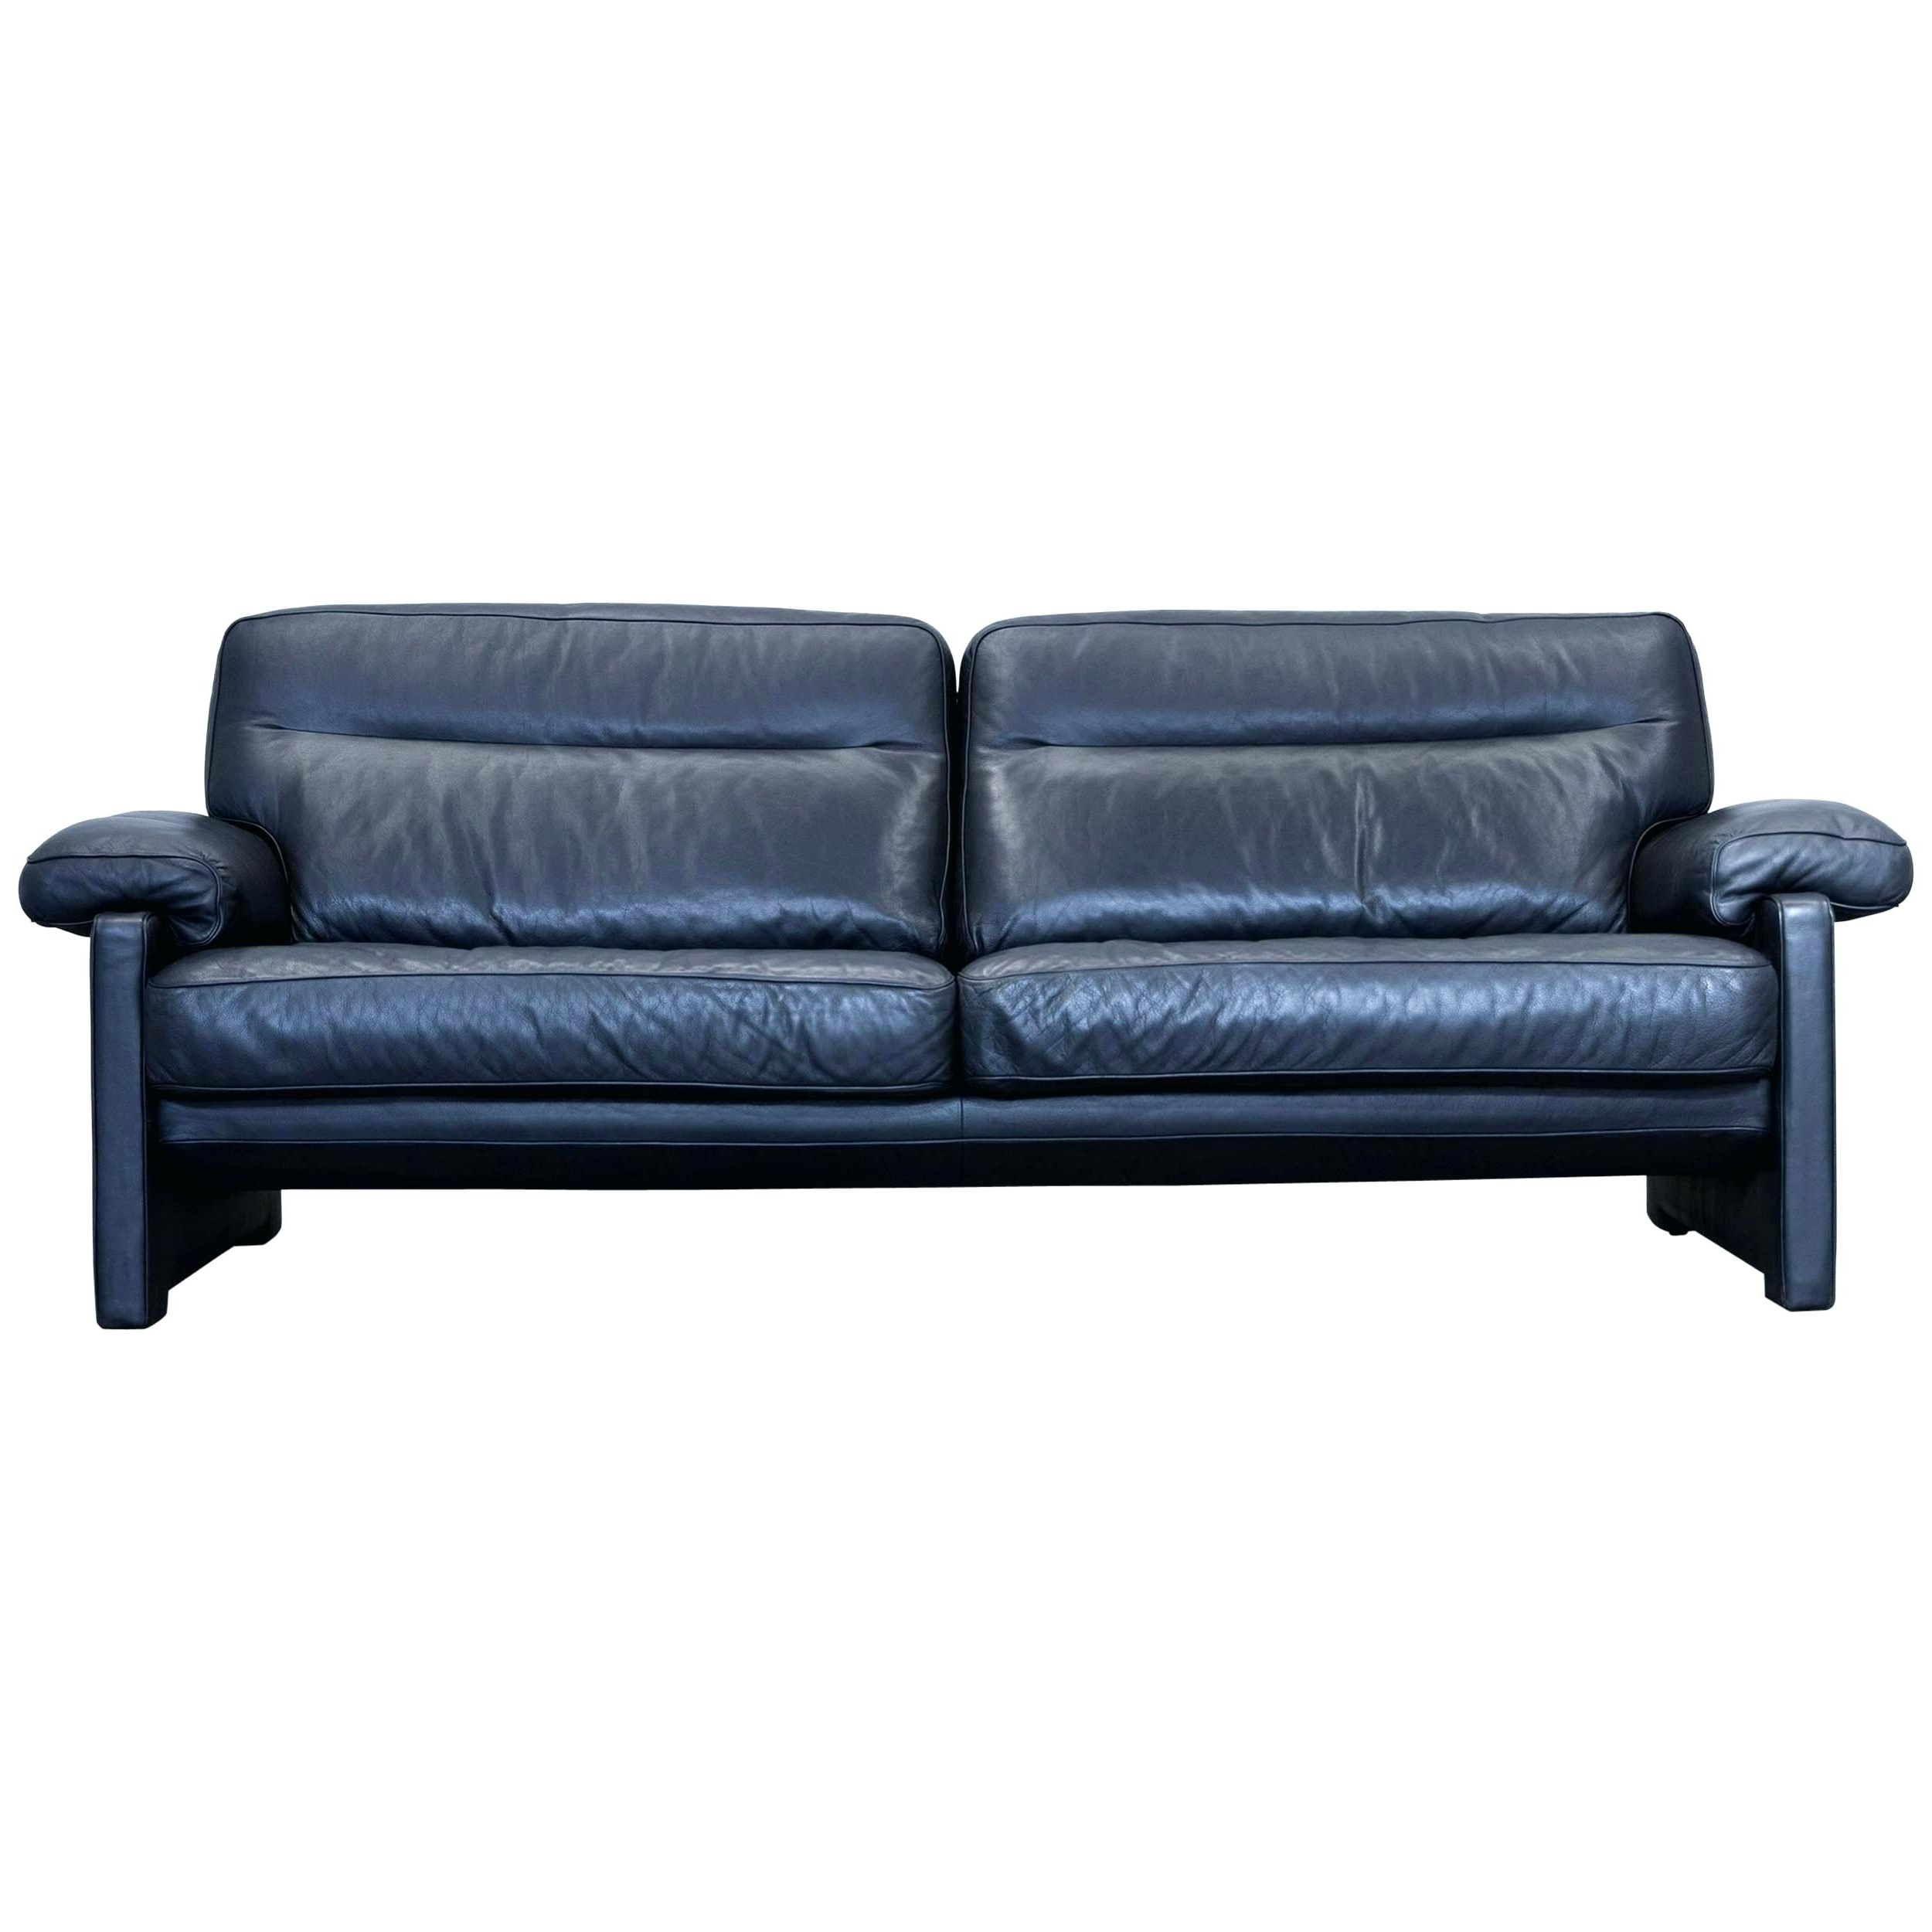 2018 Unusual Sofa Pertaining To Uncategorized : Designer Couches Within Brilliant Furniture (View 11 of 20)